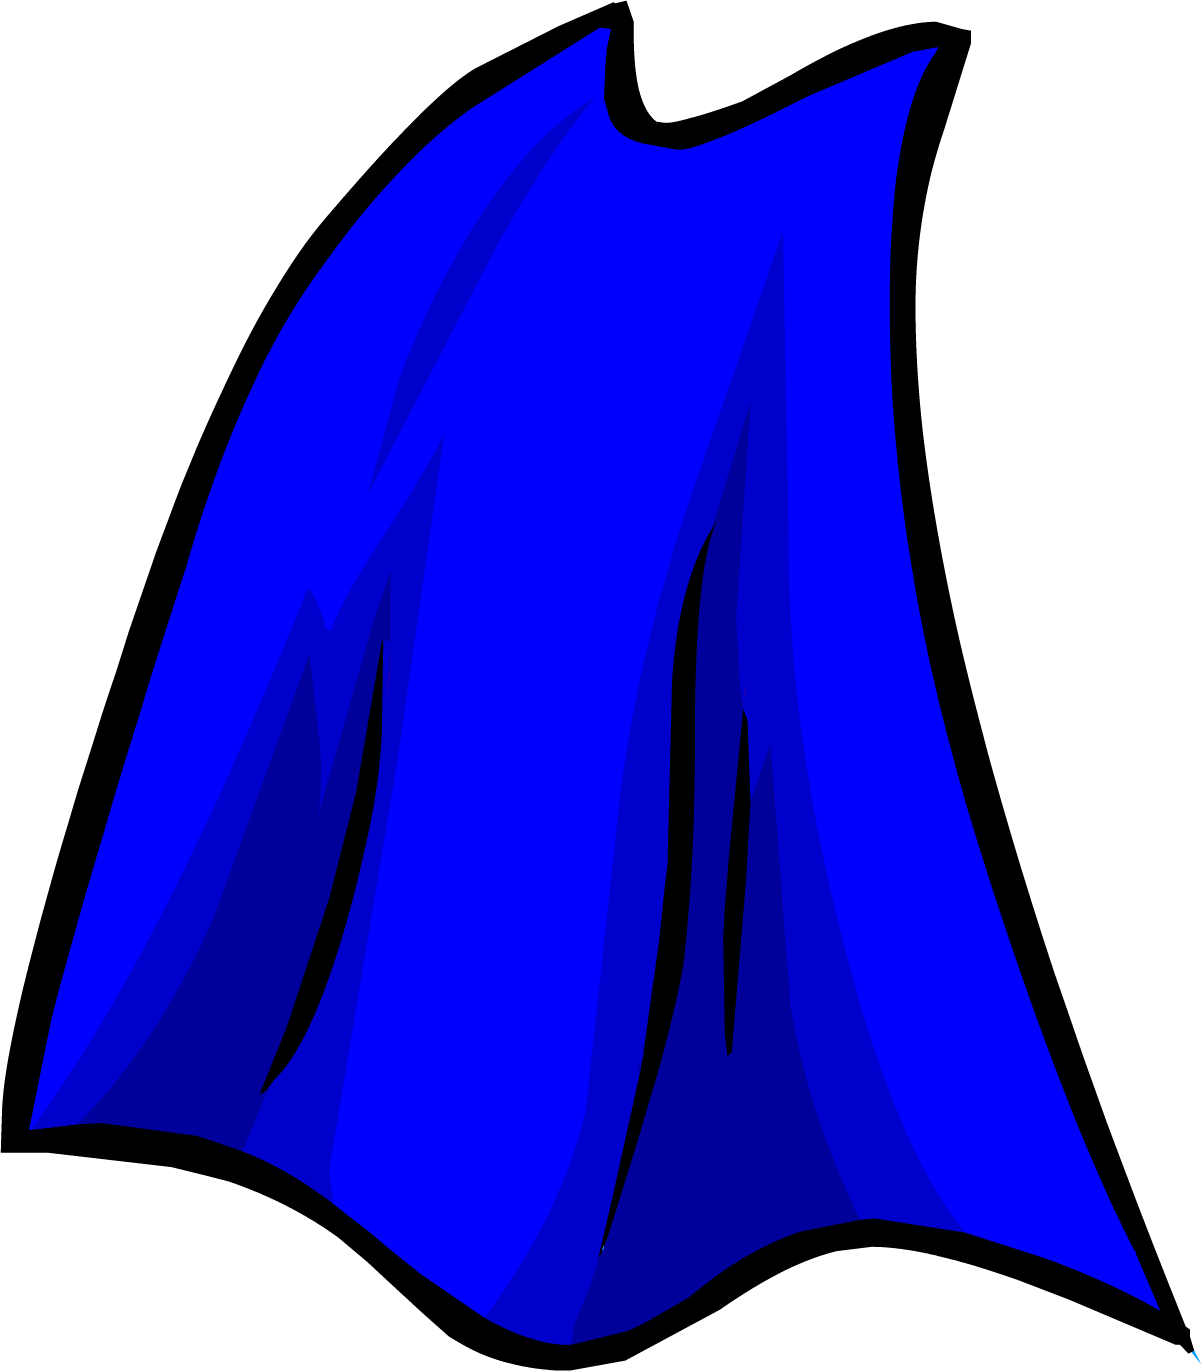 clipart free download Superhero cape clipart black and white. Blue club penguin rewritten